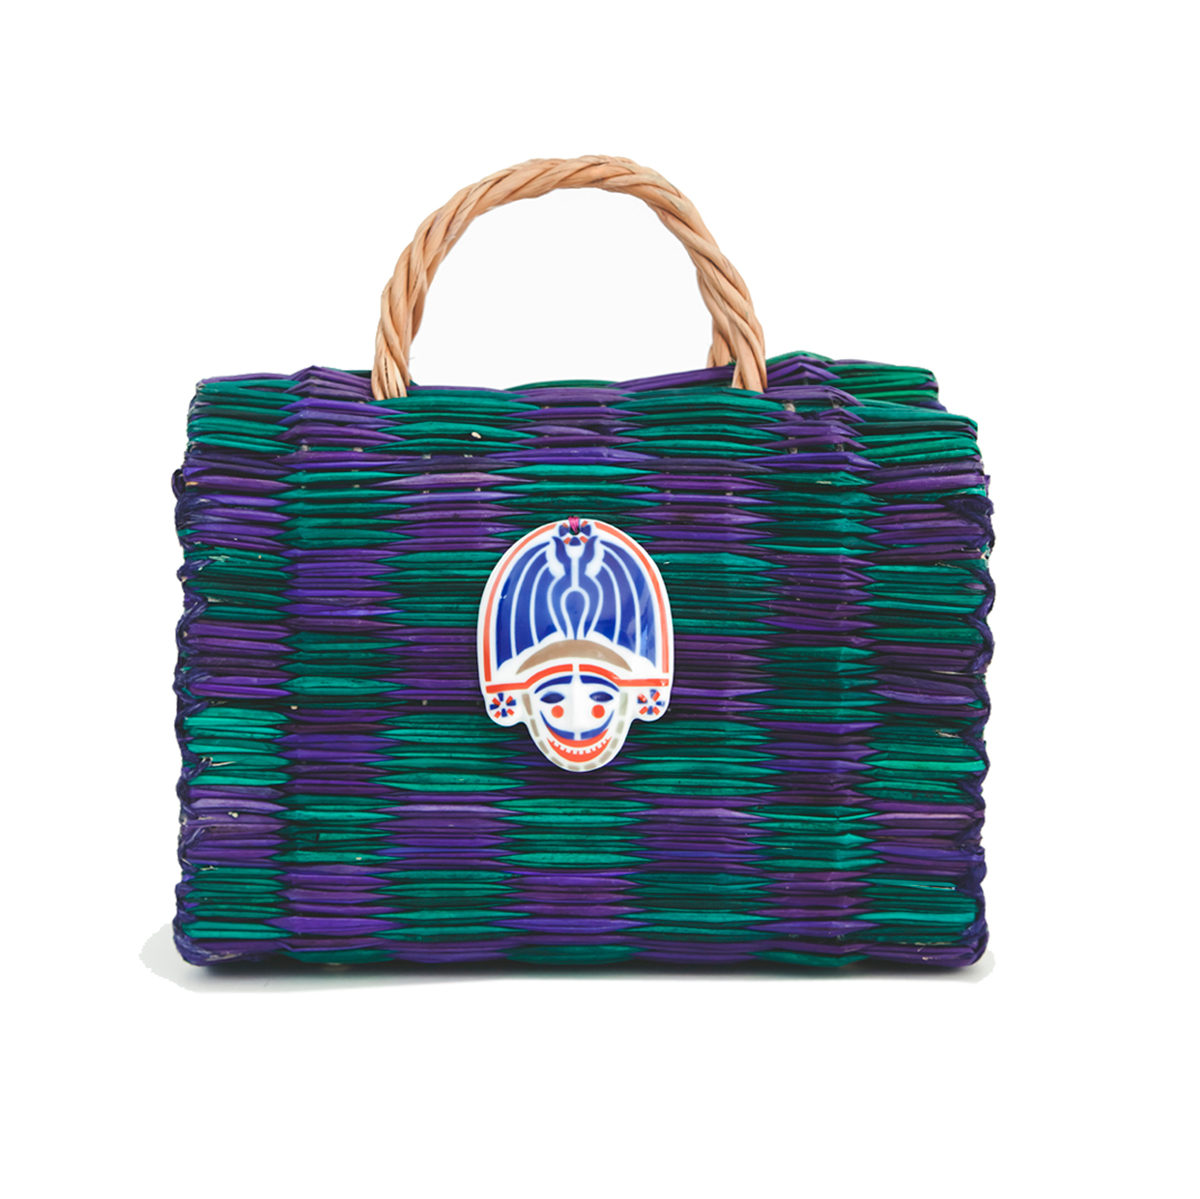 Shop the Must-Have Bags That Are Trending for Spring ...